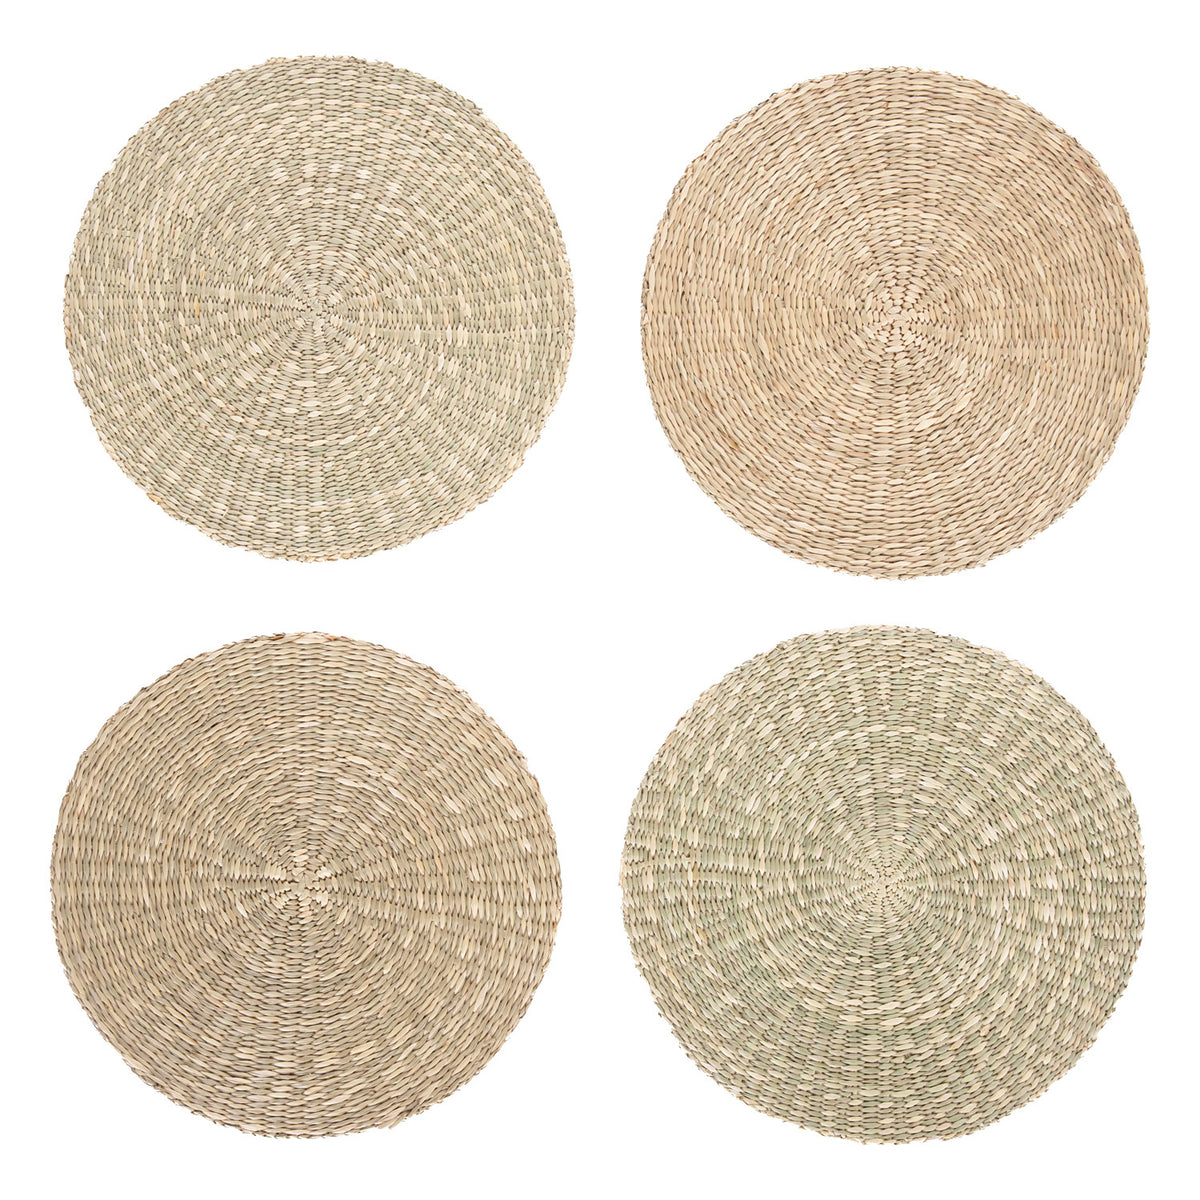 Spiral Placemats Natural, Set of 4